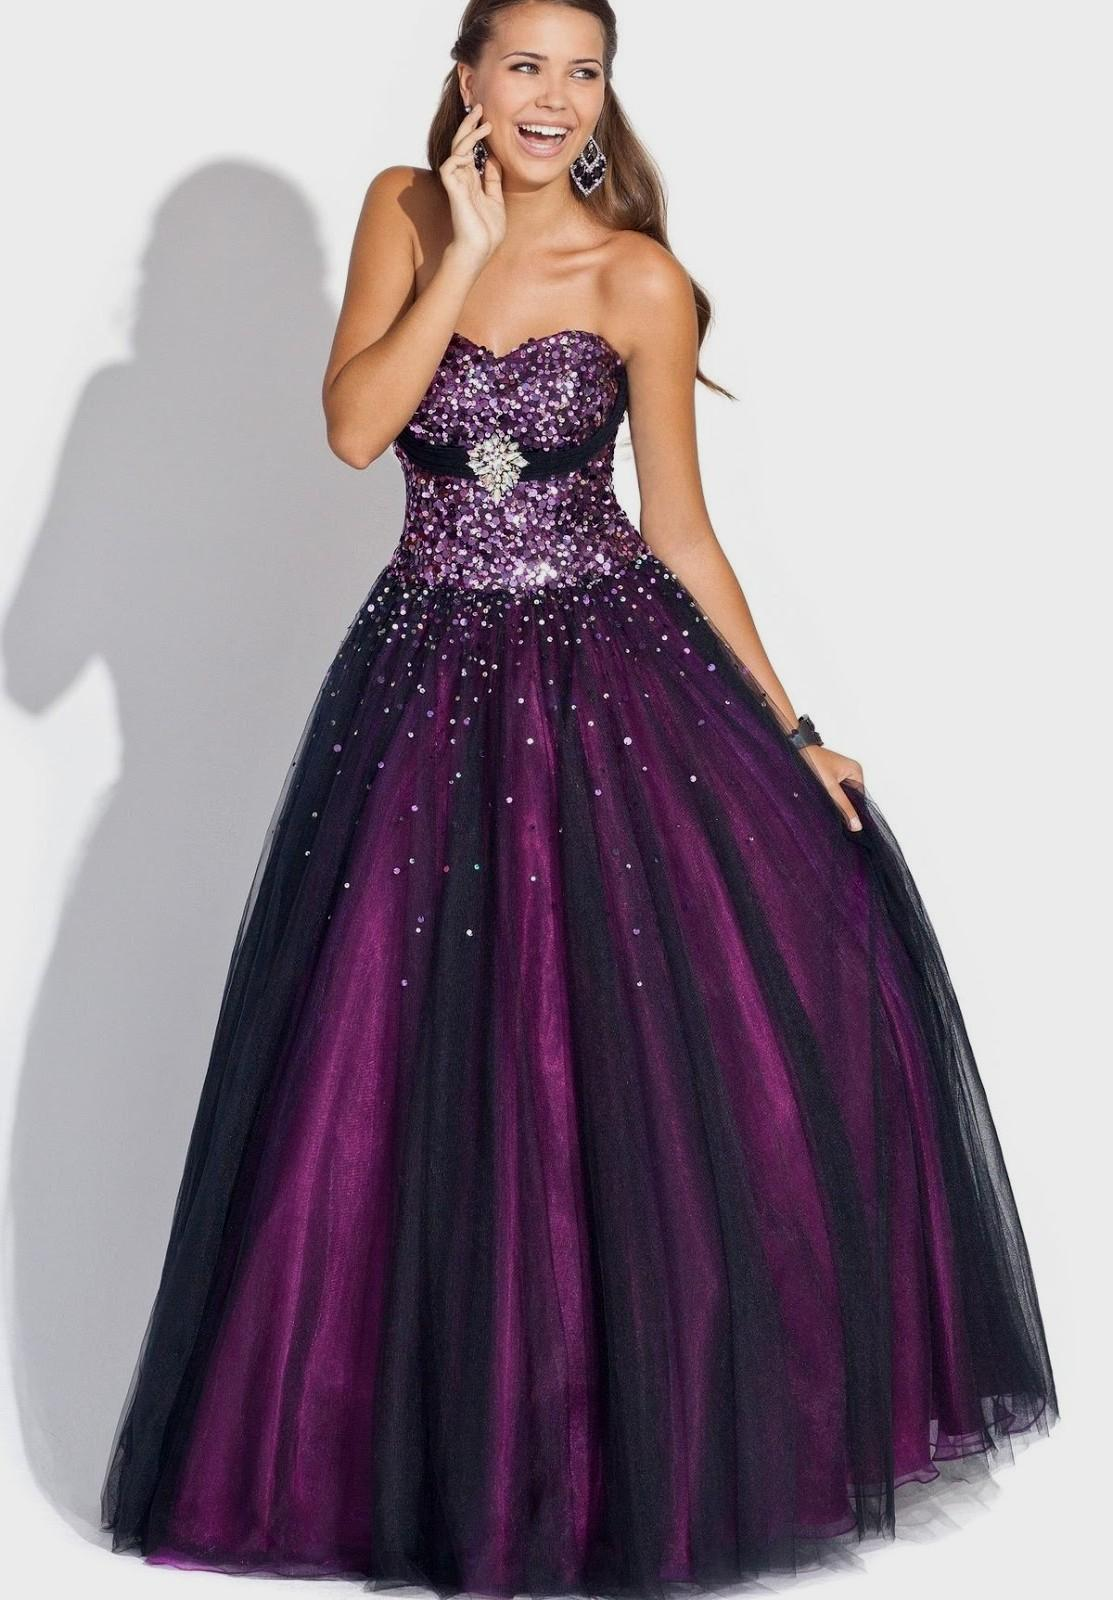 black and purple dresses for wedding photo - 1